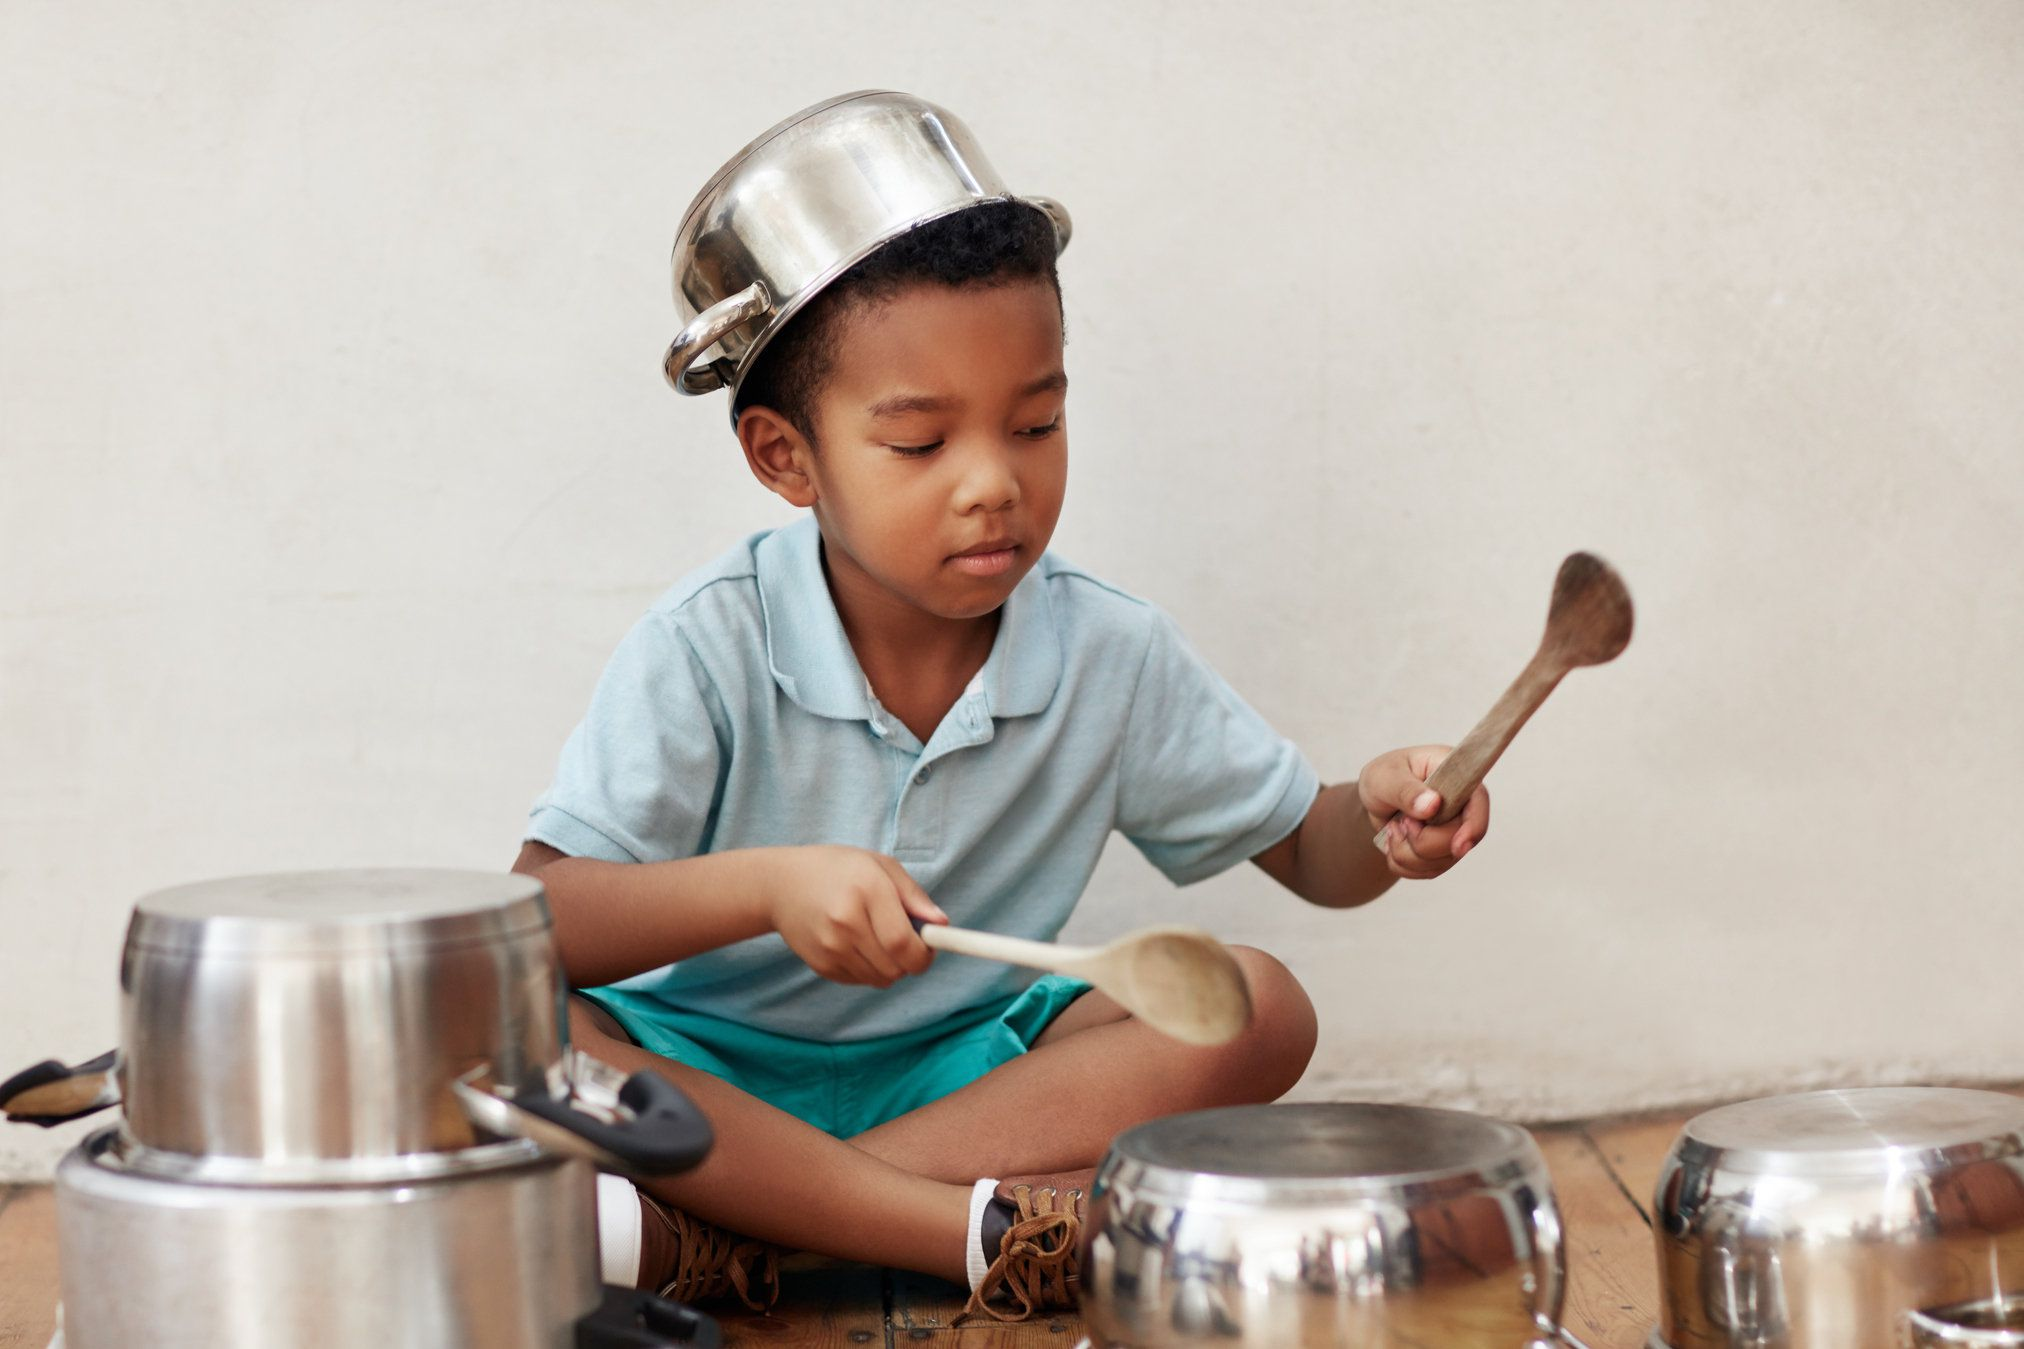 The Story Behind The Little Drummer Boy Christmas Carol